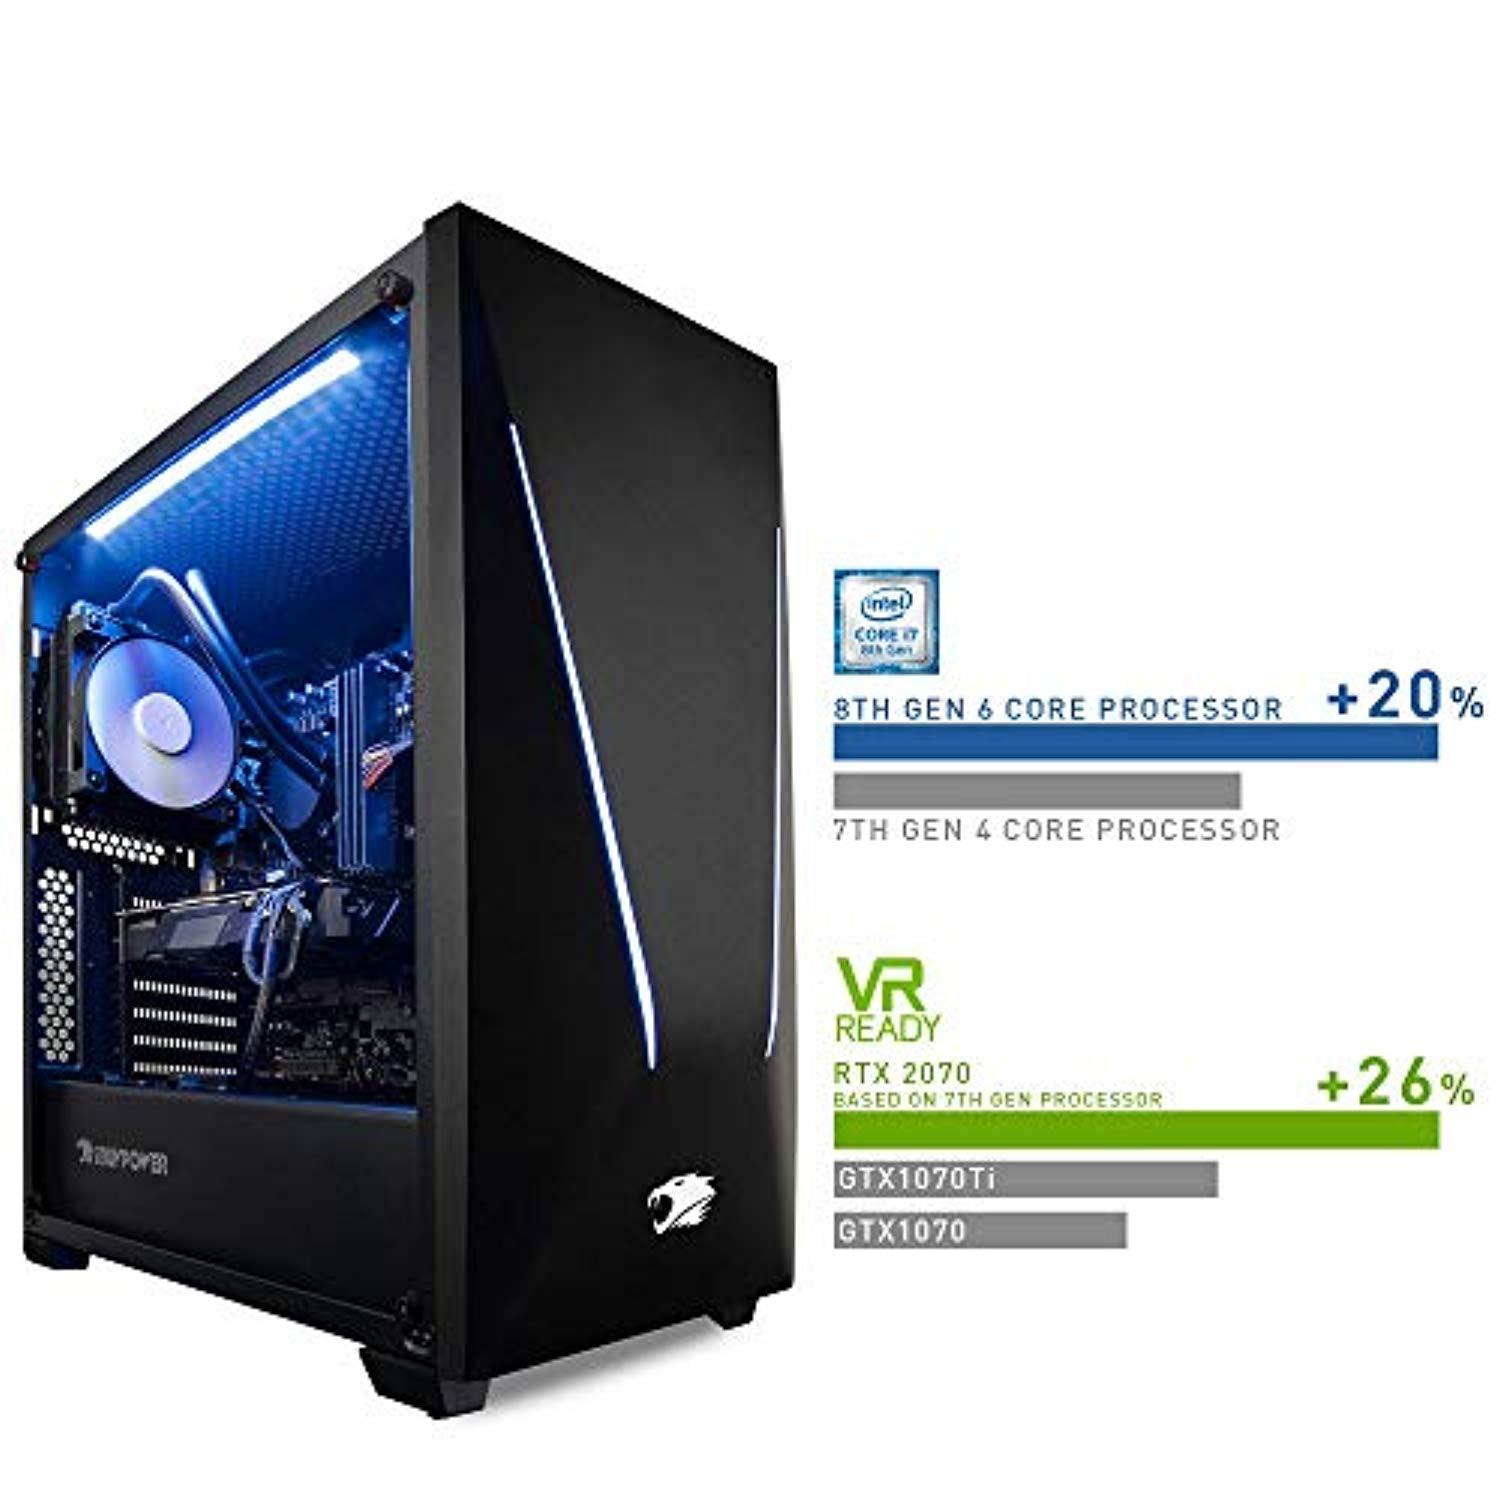 Discount Gaming PC Desktop Trace 9220 Liquid Cooled Overclockable i7-8700K, NVIDIA Geforce RTX 2070 8GB, Z370 Motherboard, 16GB RAM, 1TB HDD, 240GB SSD, AC WiFi, Win 10 64-bit, RGB Case, VR Ready